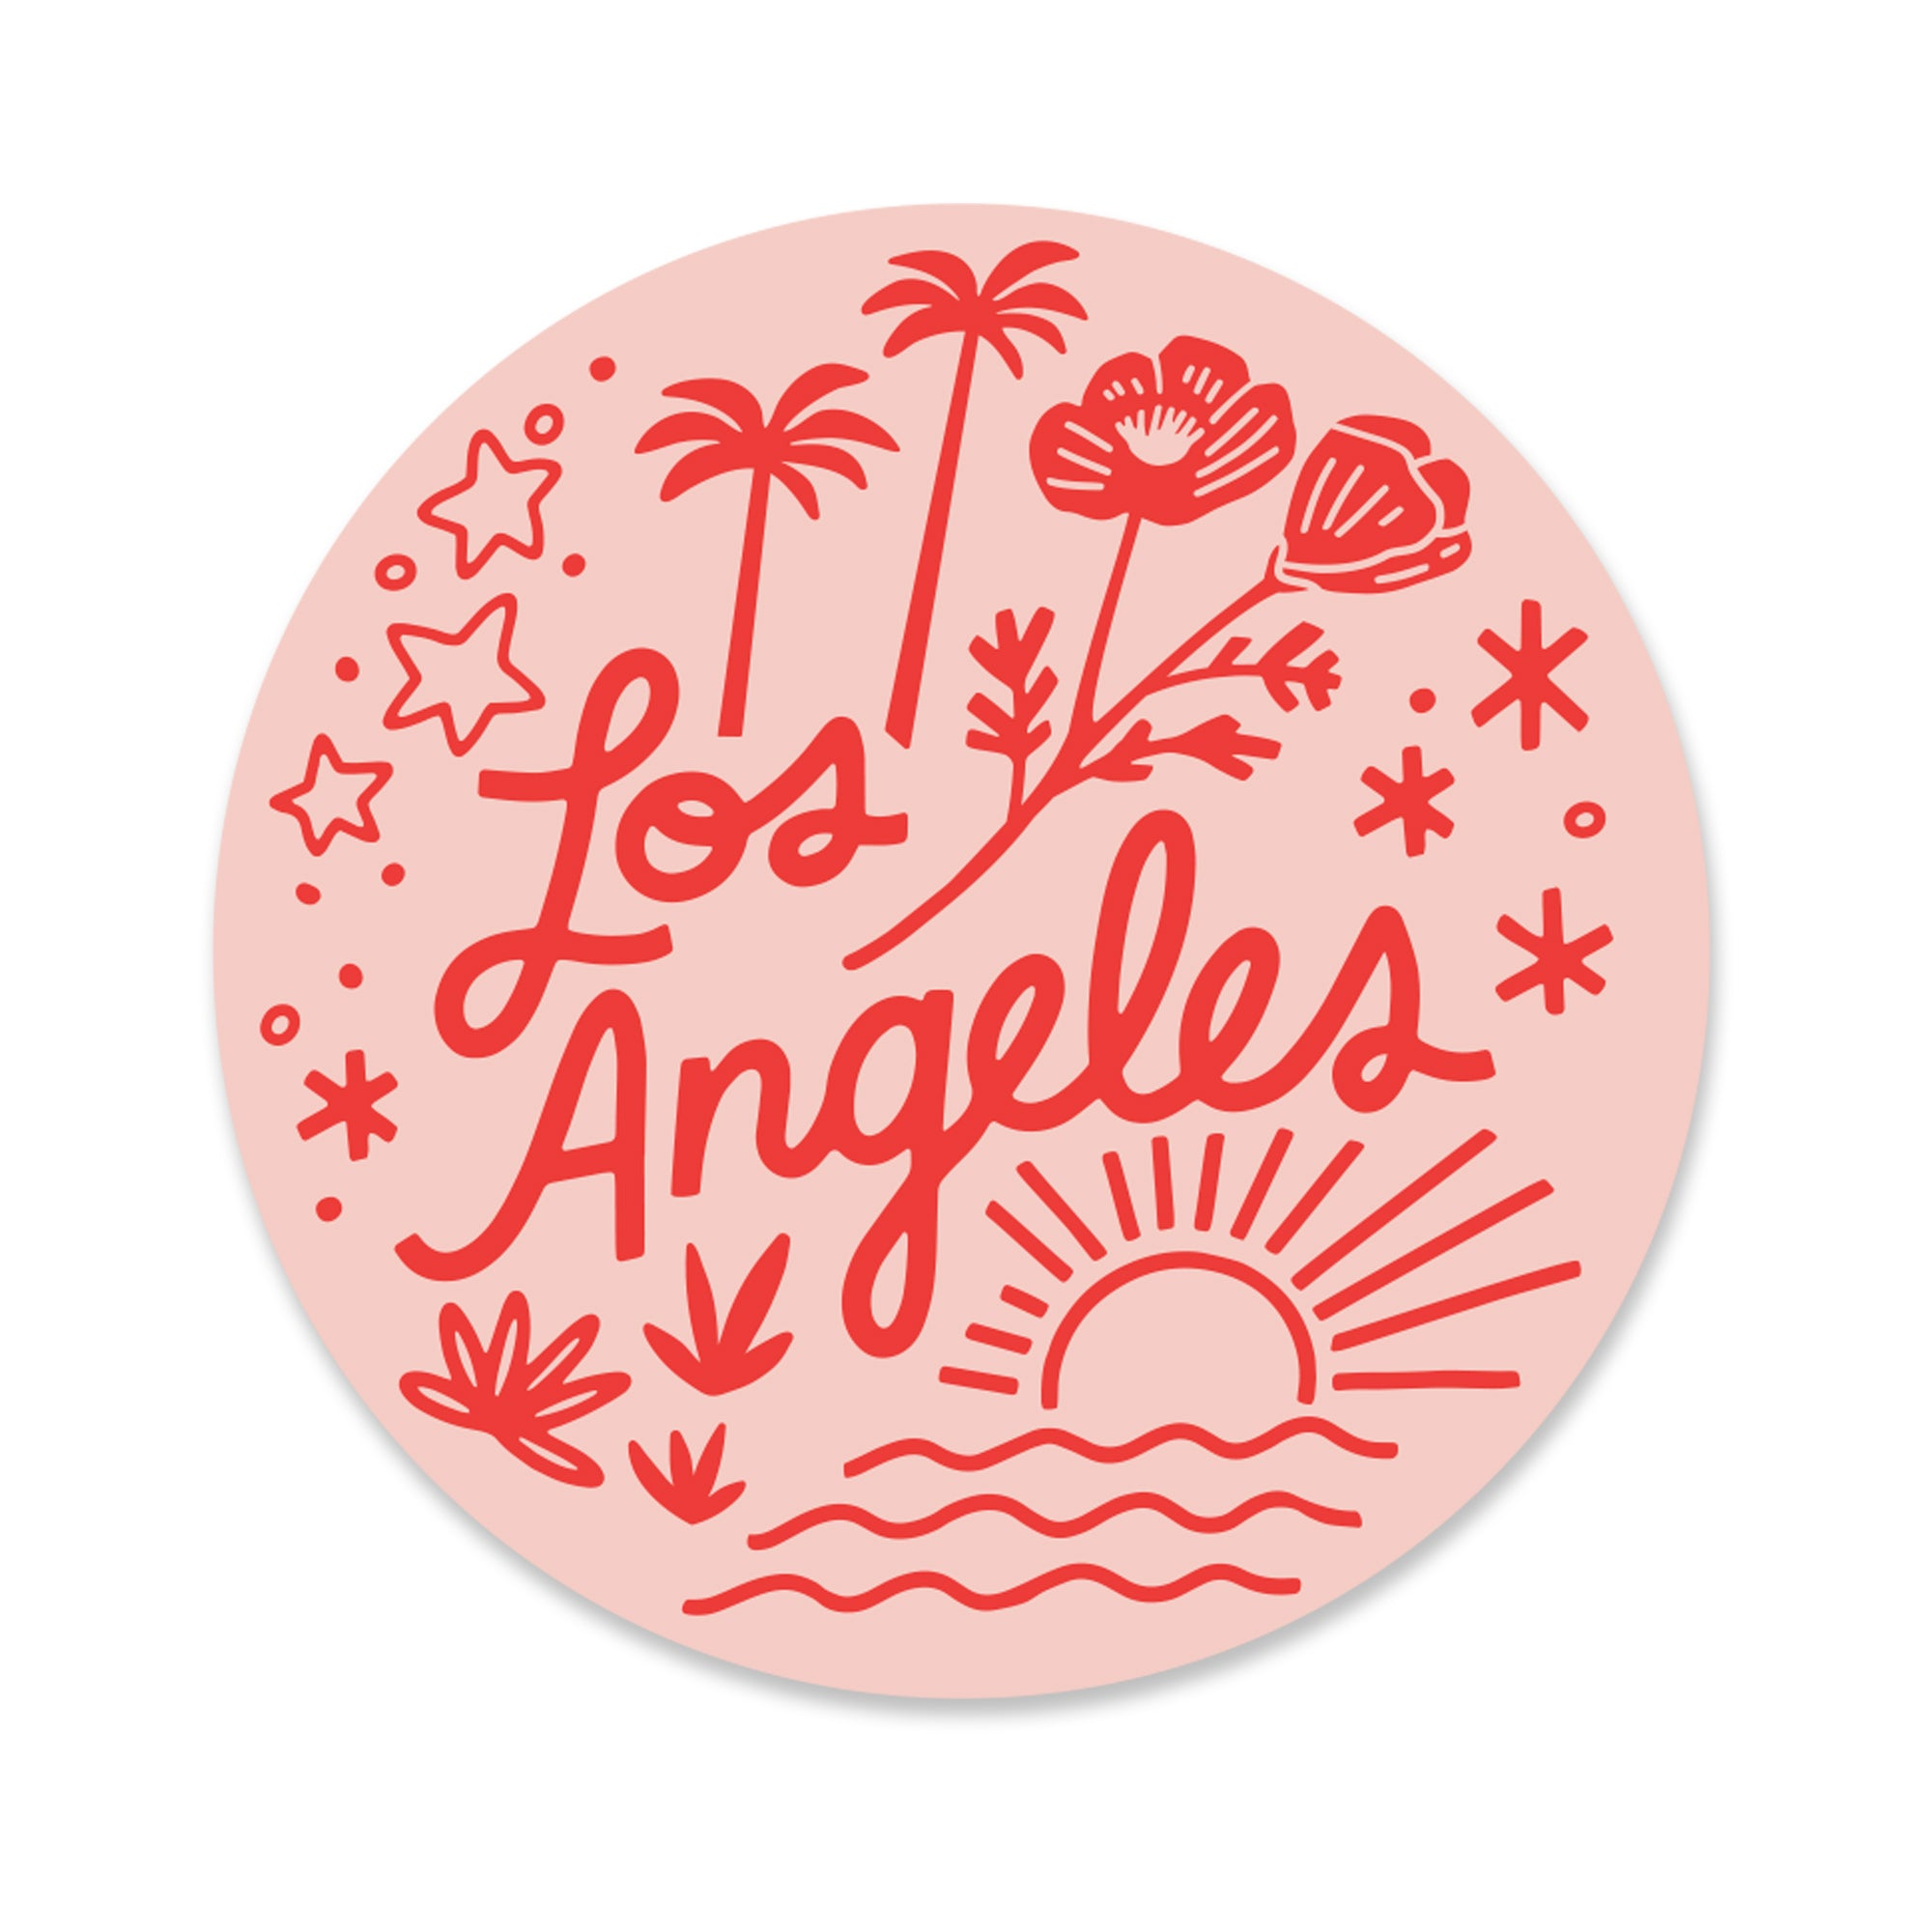 Los Angeles in Pink Sticker